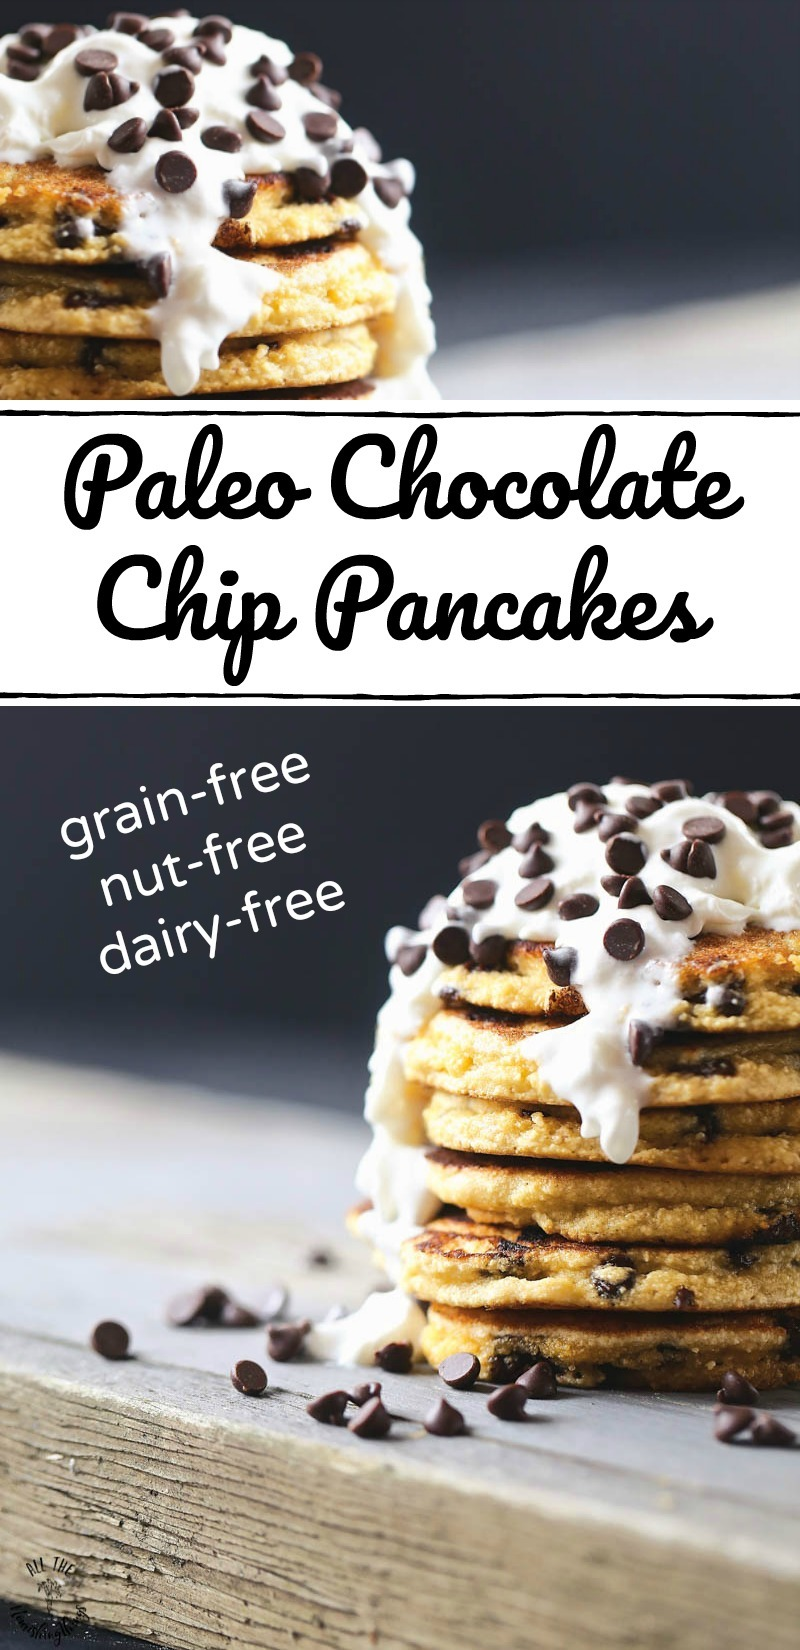 collage of 2 images of paleo chocolate chip pancakes with text overlay between images